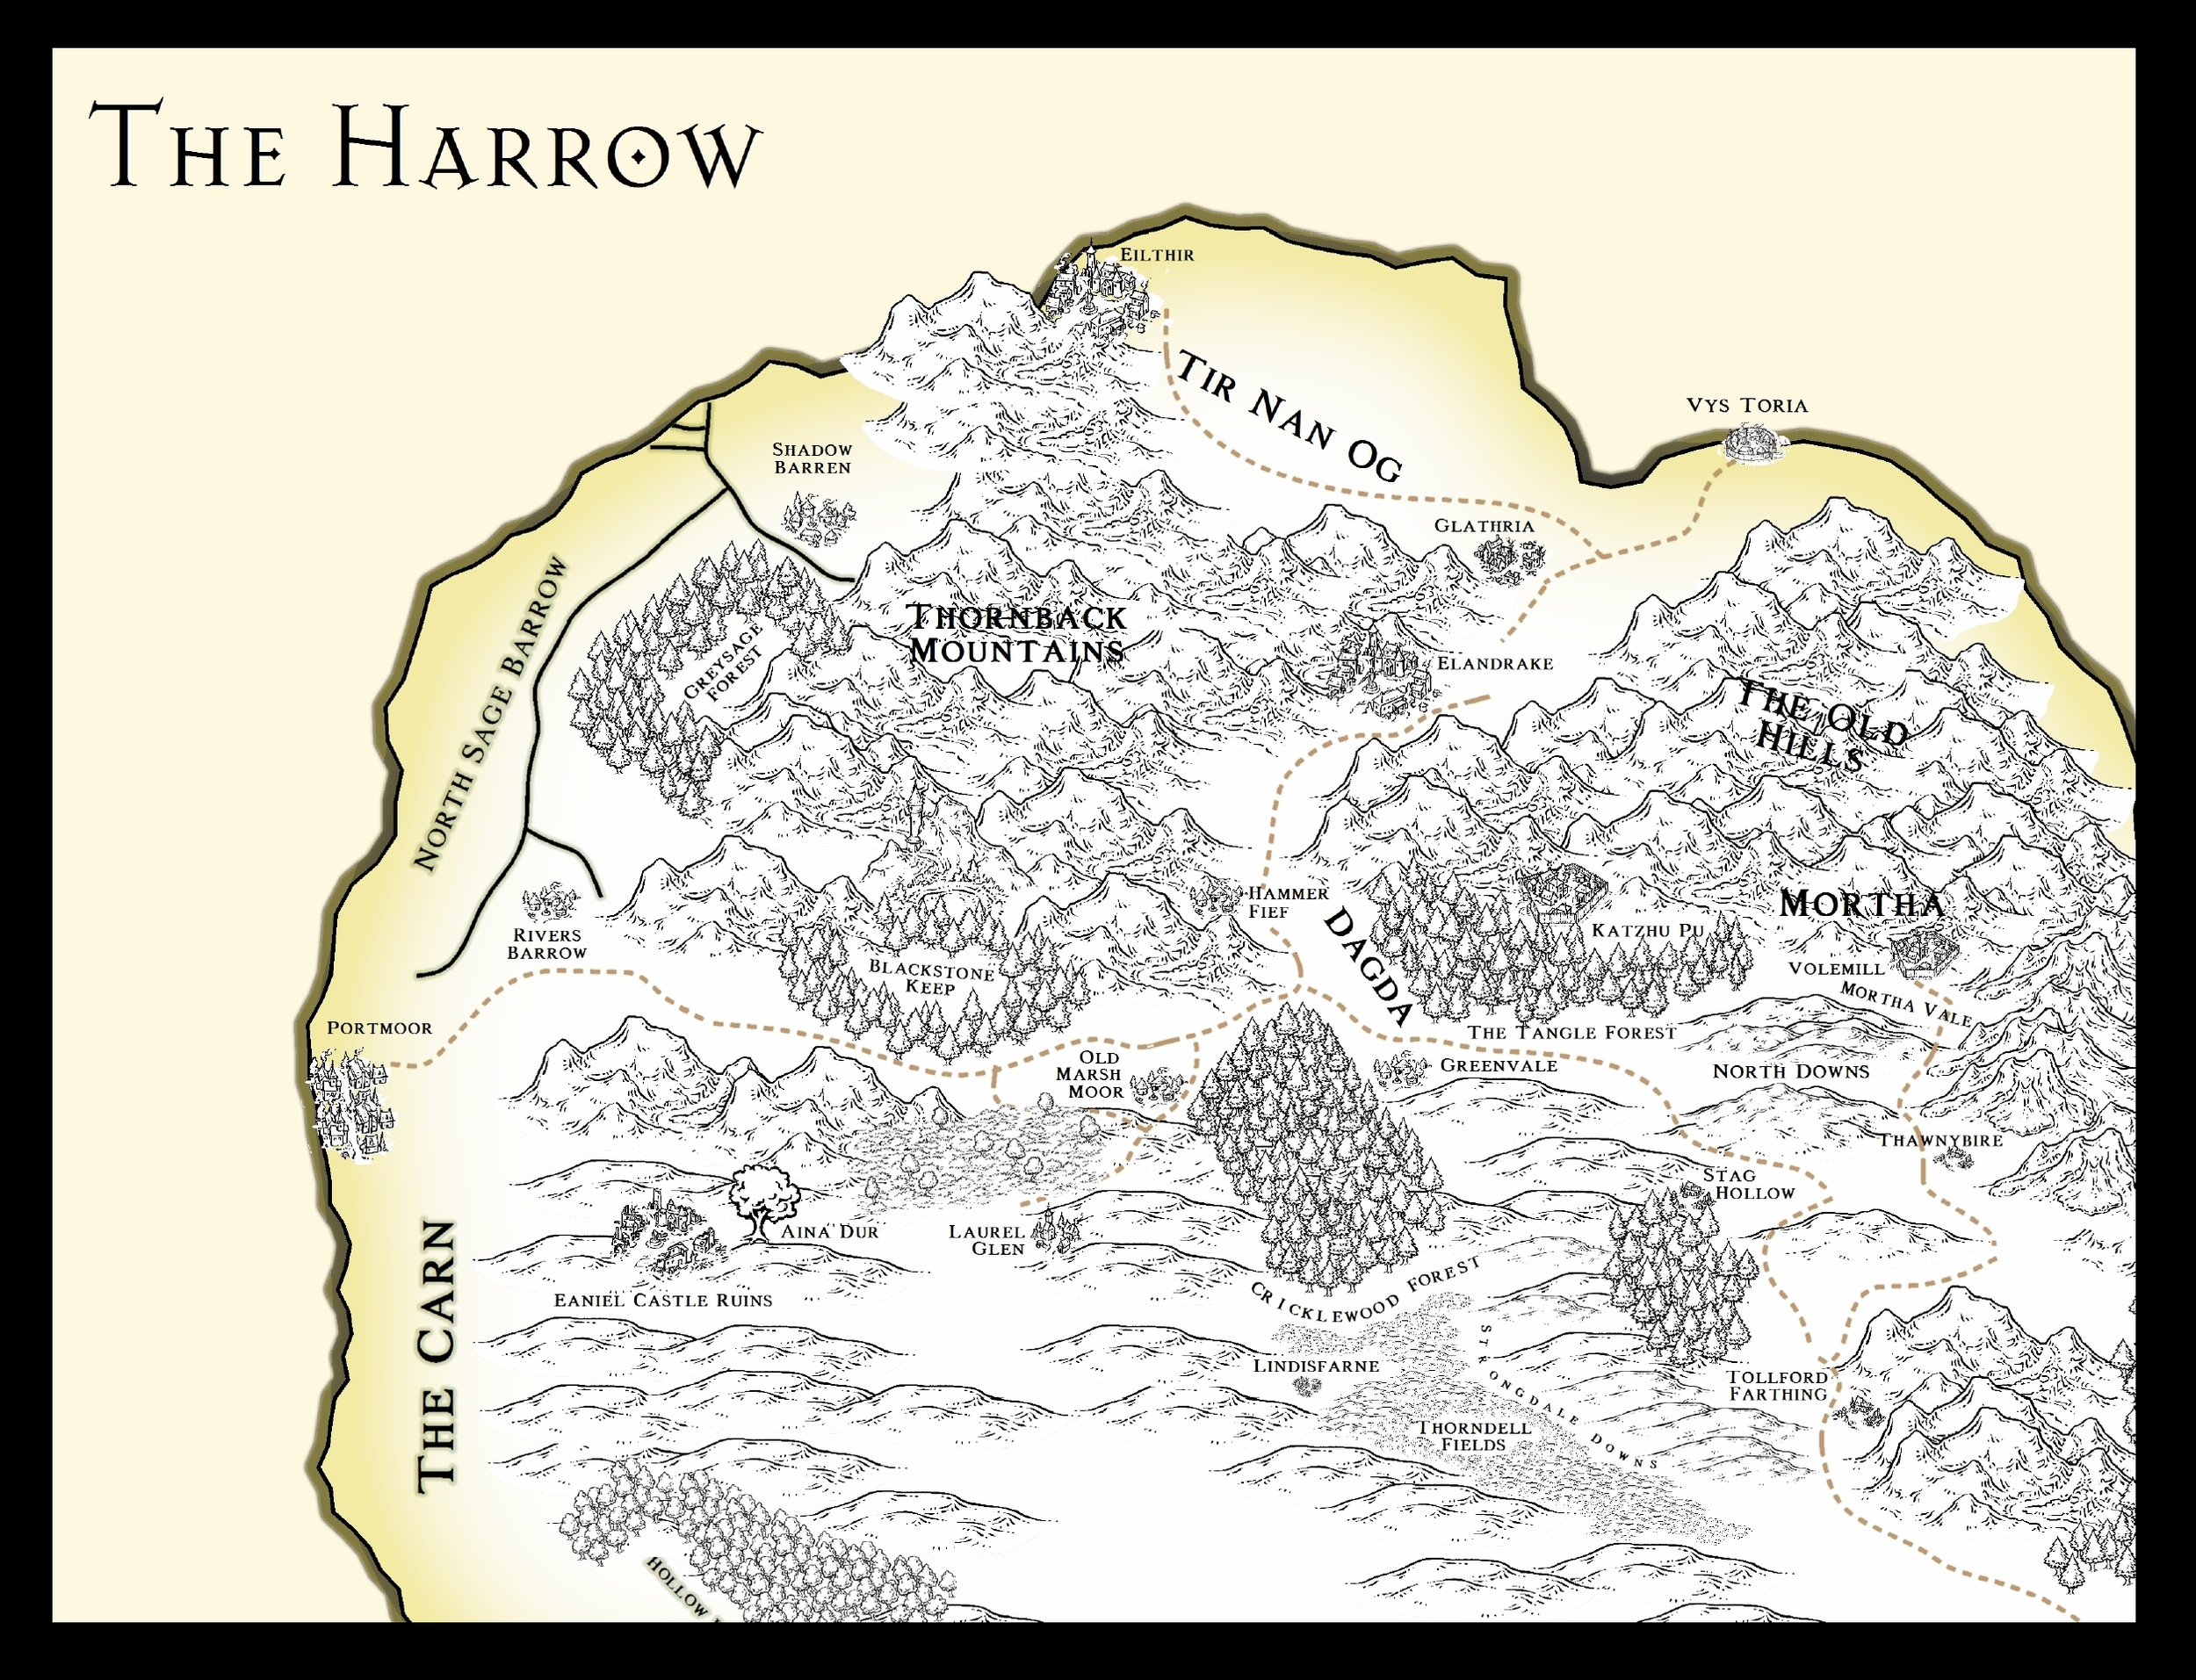 New Harrow Map. From Companion Book